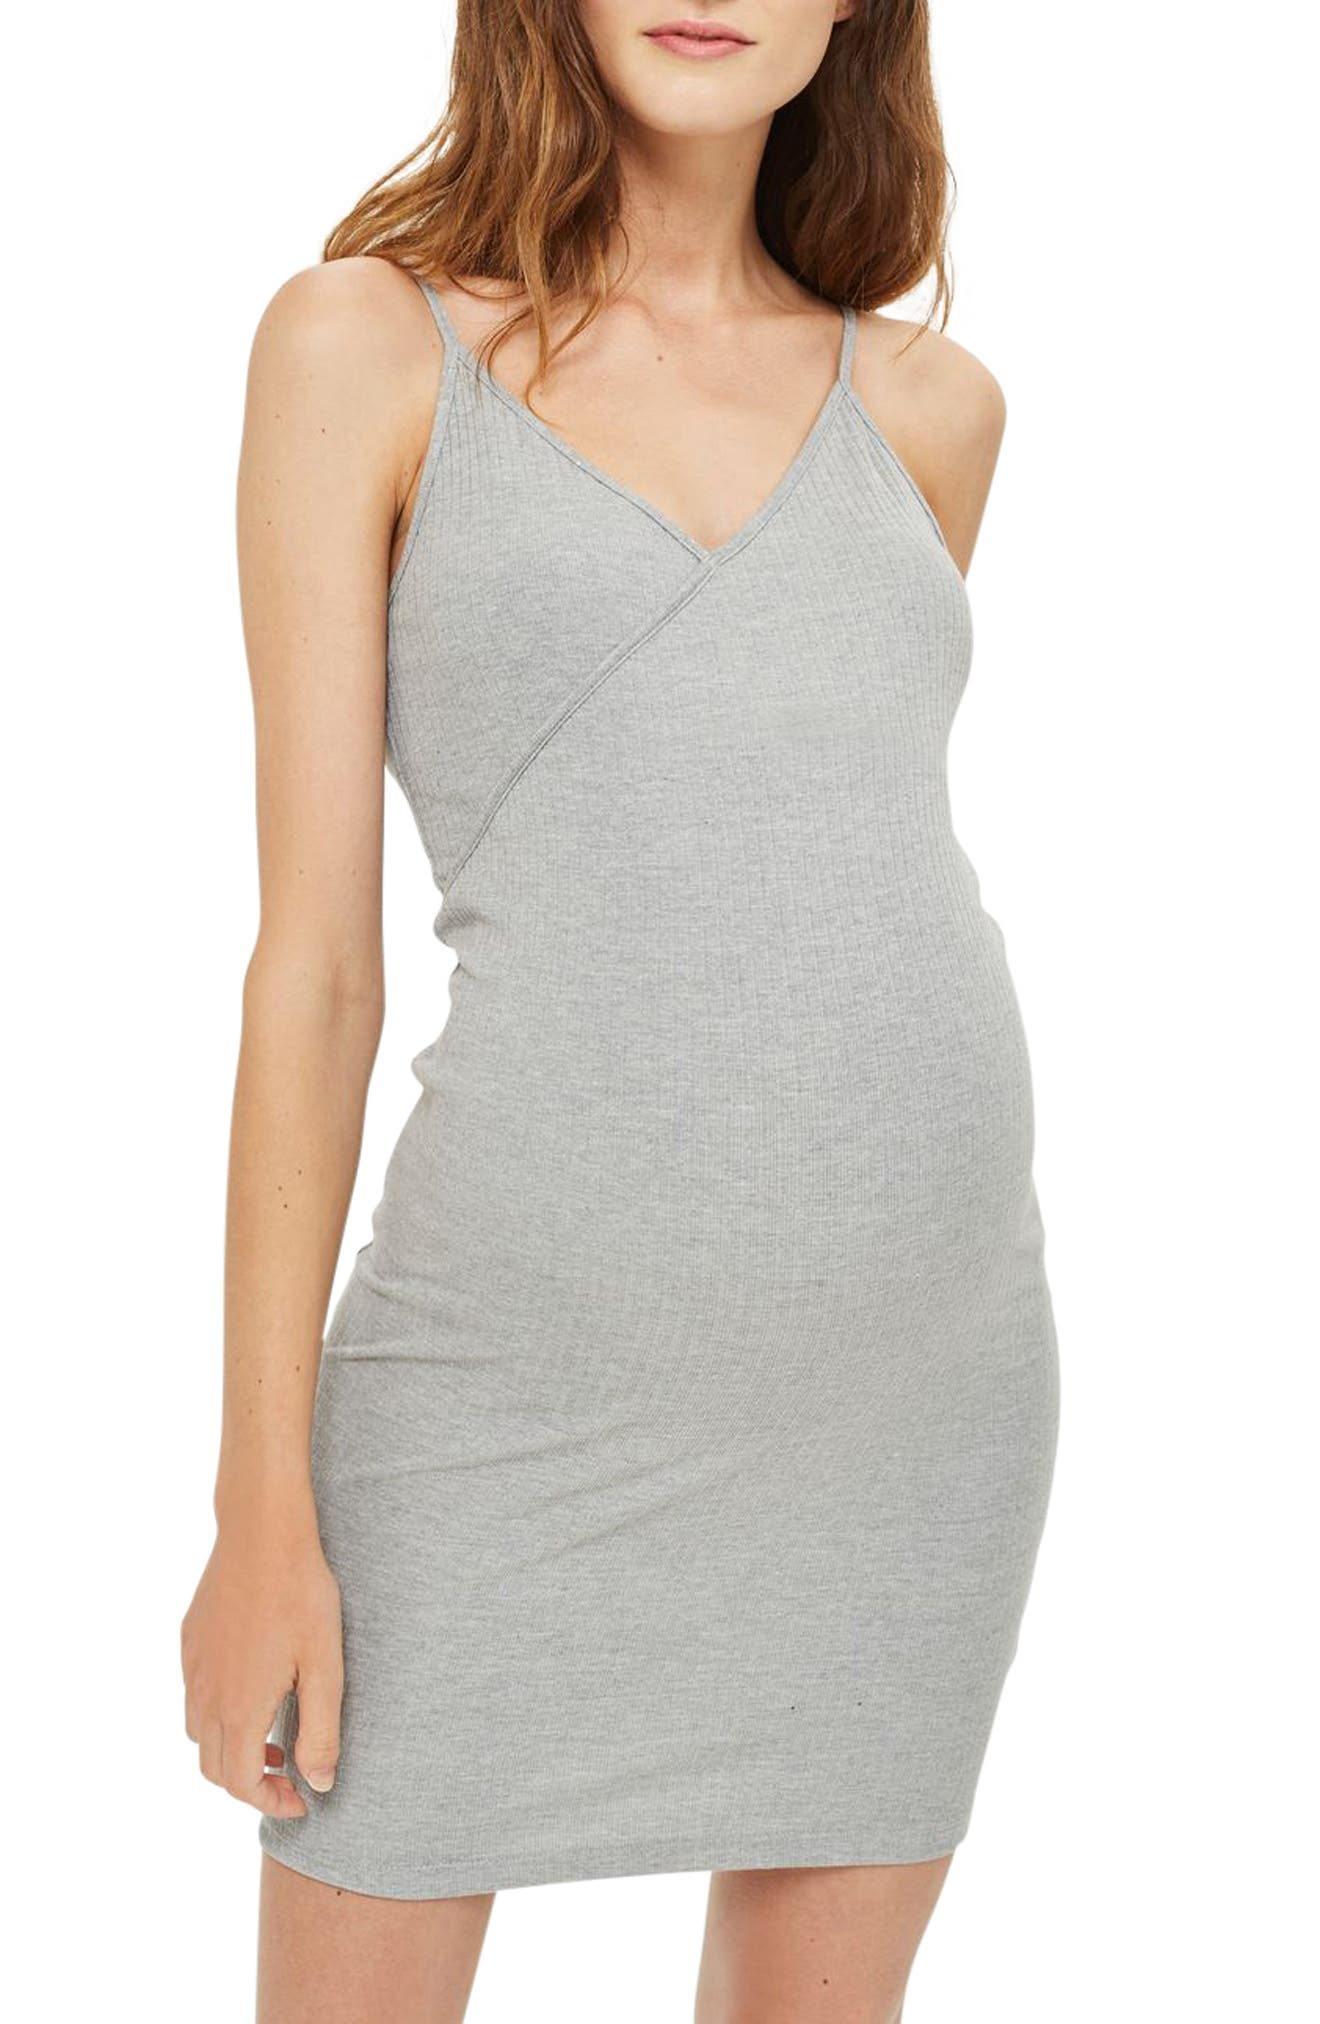 Topshop Kaia Maternity Body-Con Dress